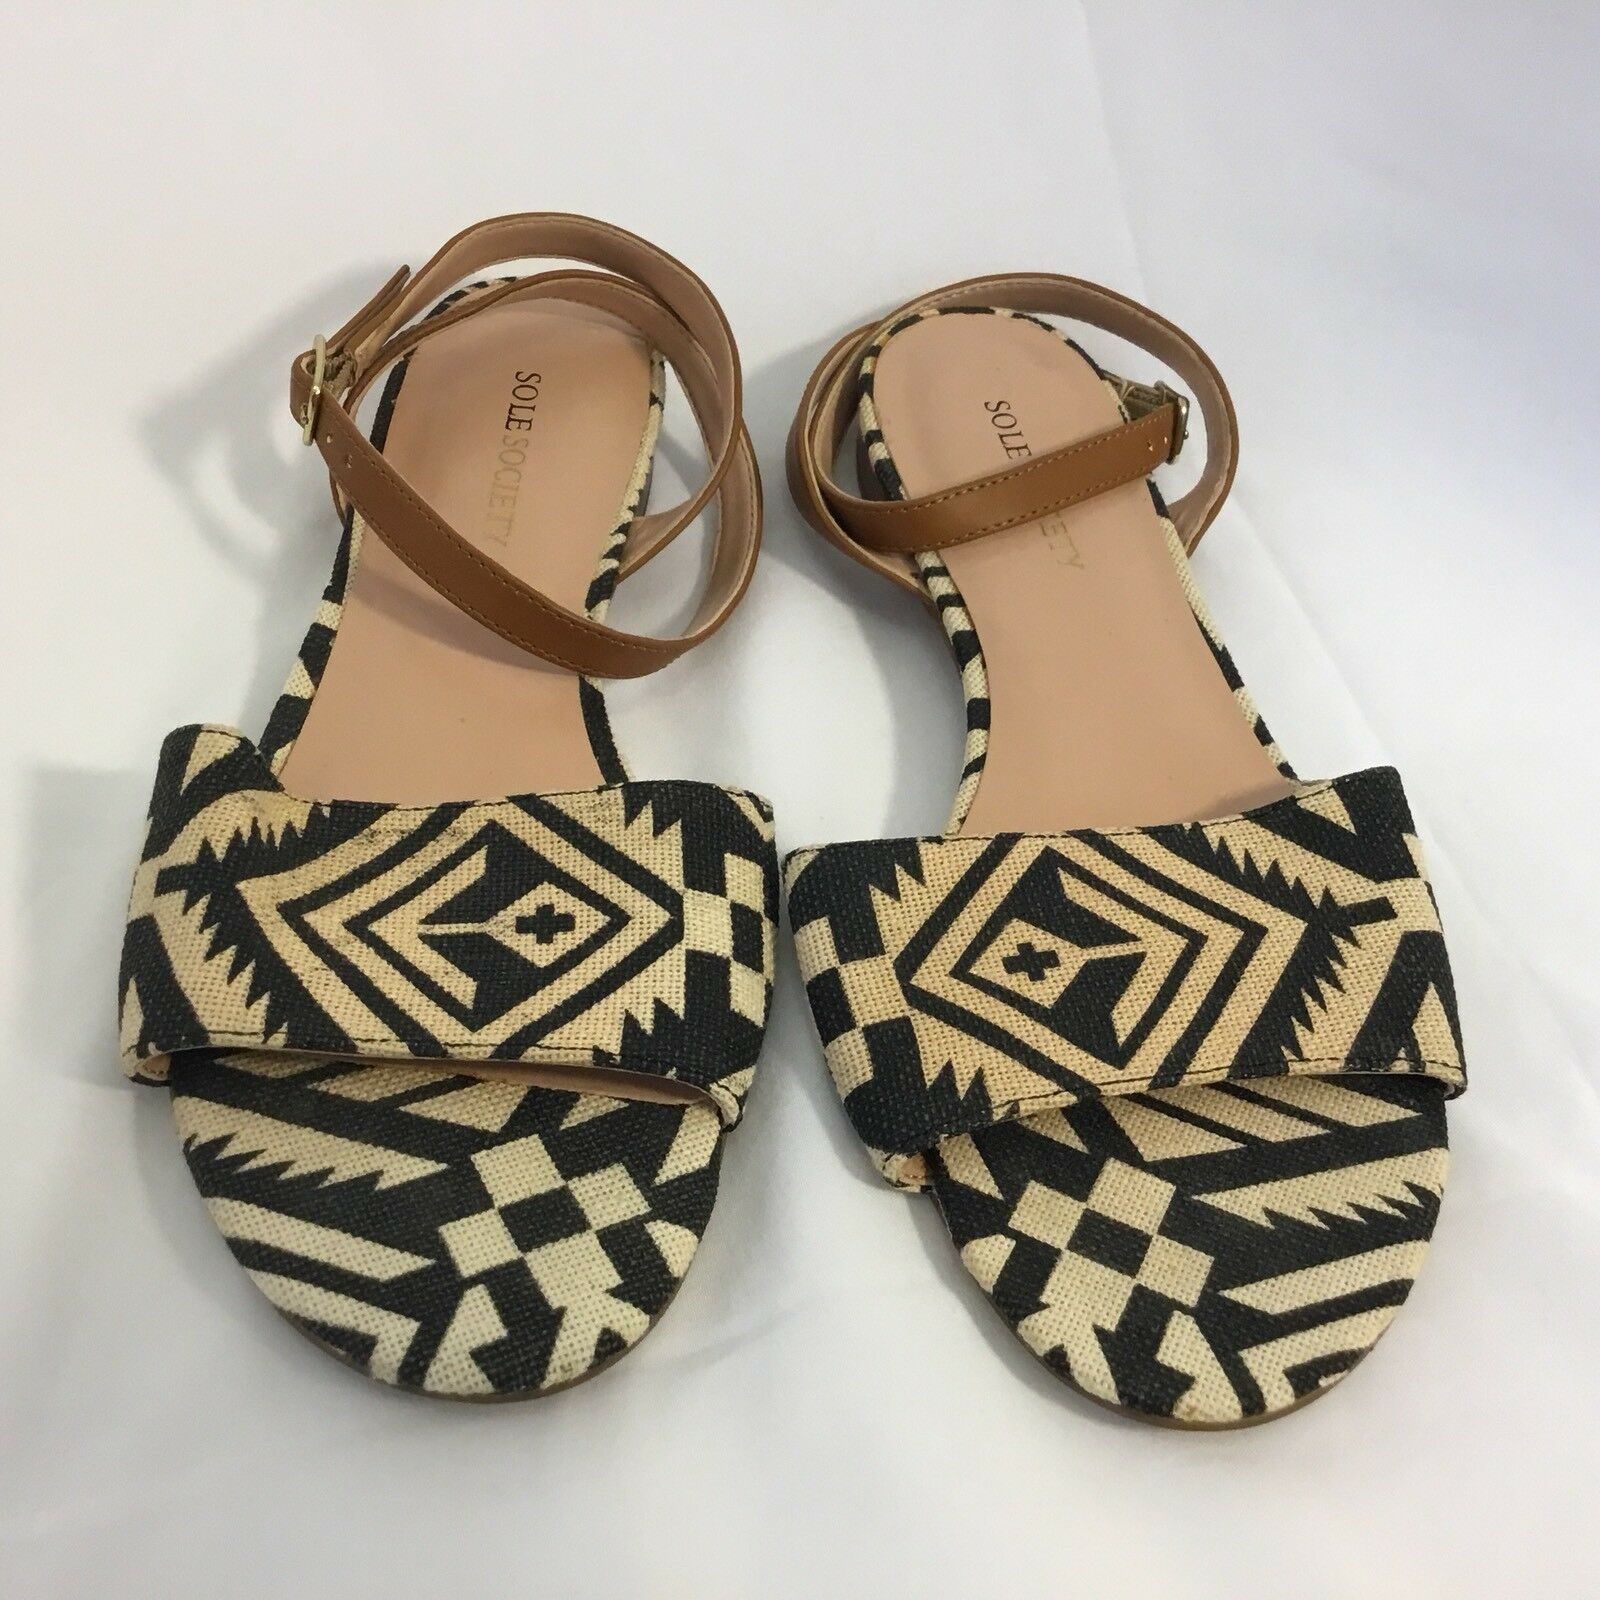 Sole Society Ankle Strap Open Toe Flats - 7 1 2B